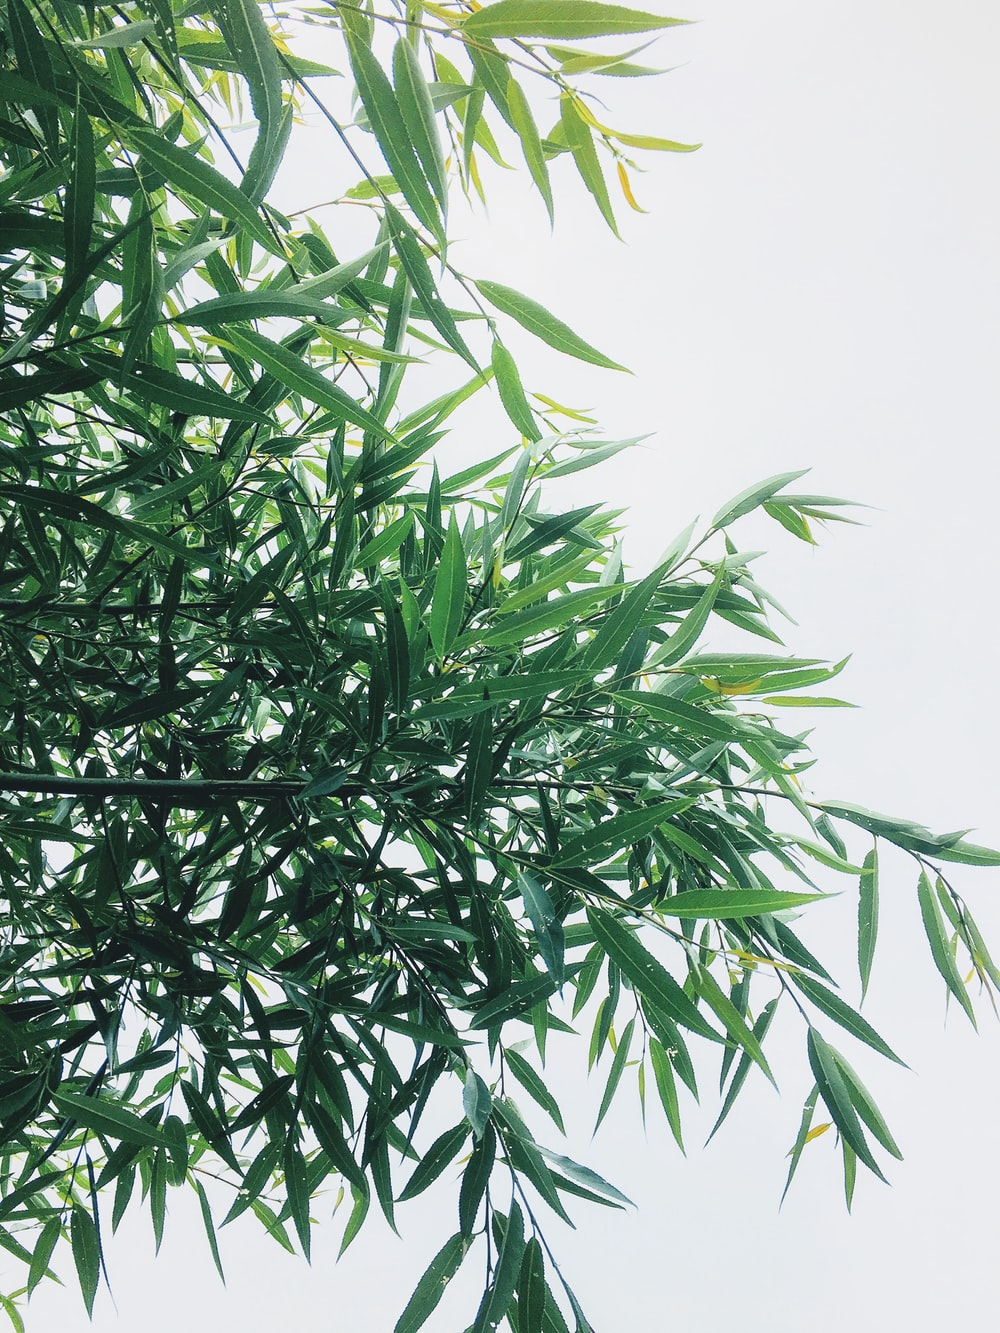 green bamboo leaves